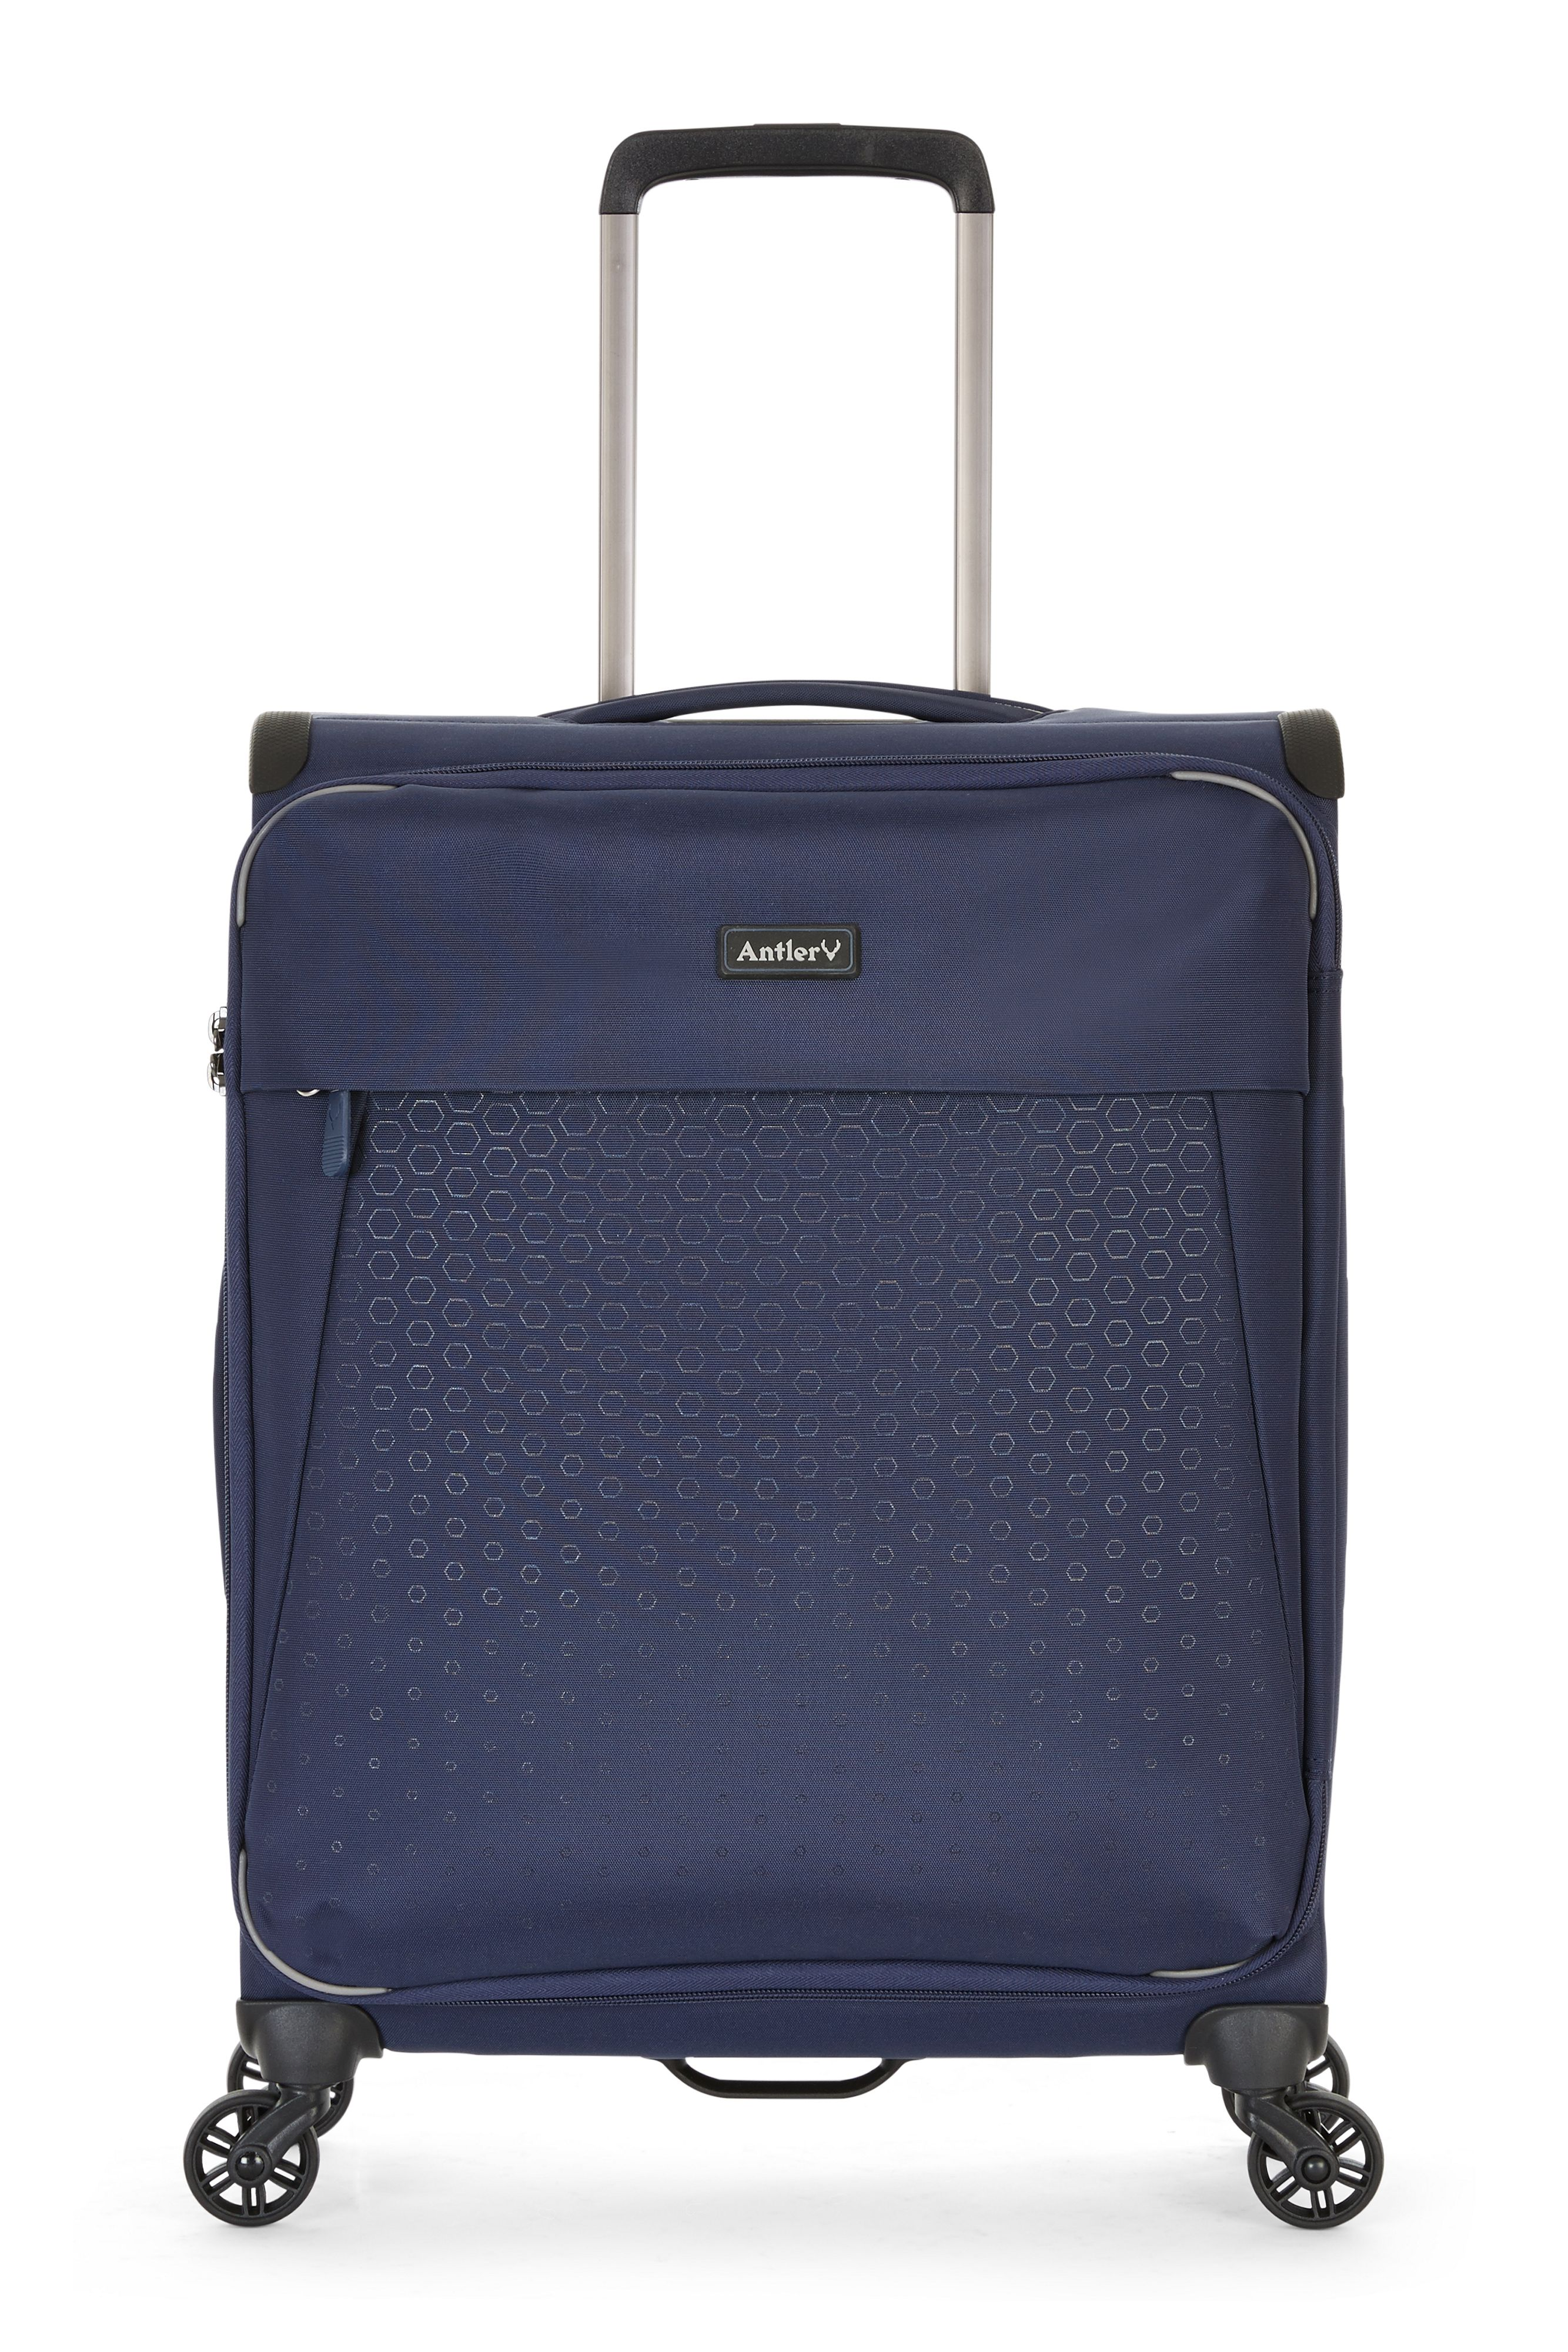 Antler Oxygen Navy 4 wheel soft cabin suitcase Navy